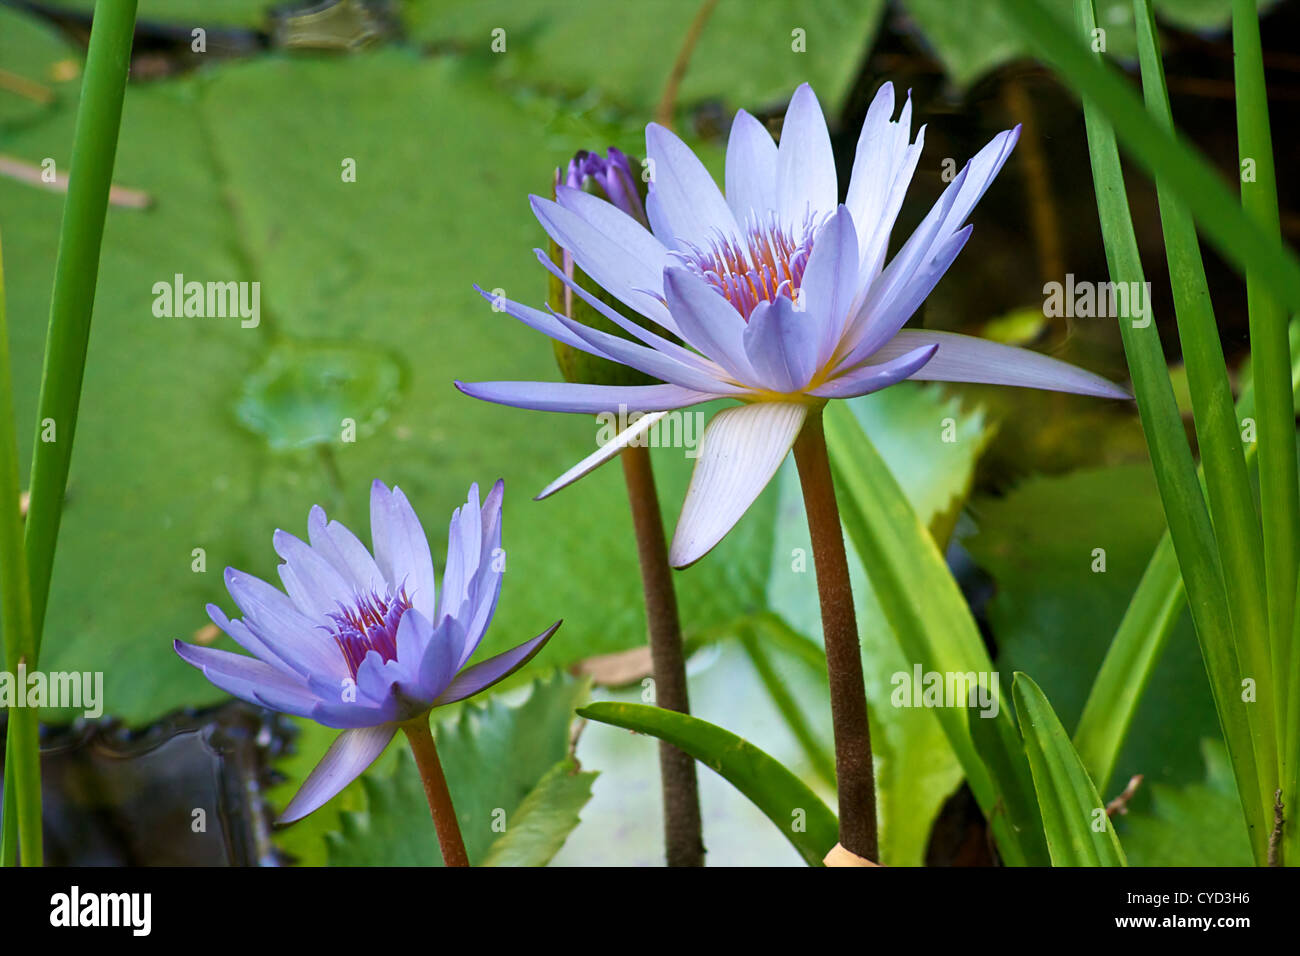 Pastel blue water lilies or lotus flower growing in tall green pastel blue water lilies or lotus flower growing in tall green grass surrounded by lily pads izmirmasajfo